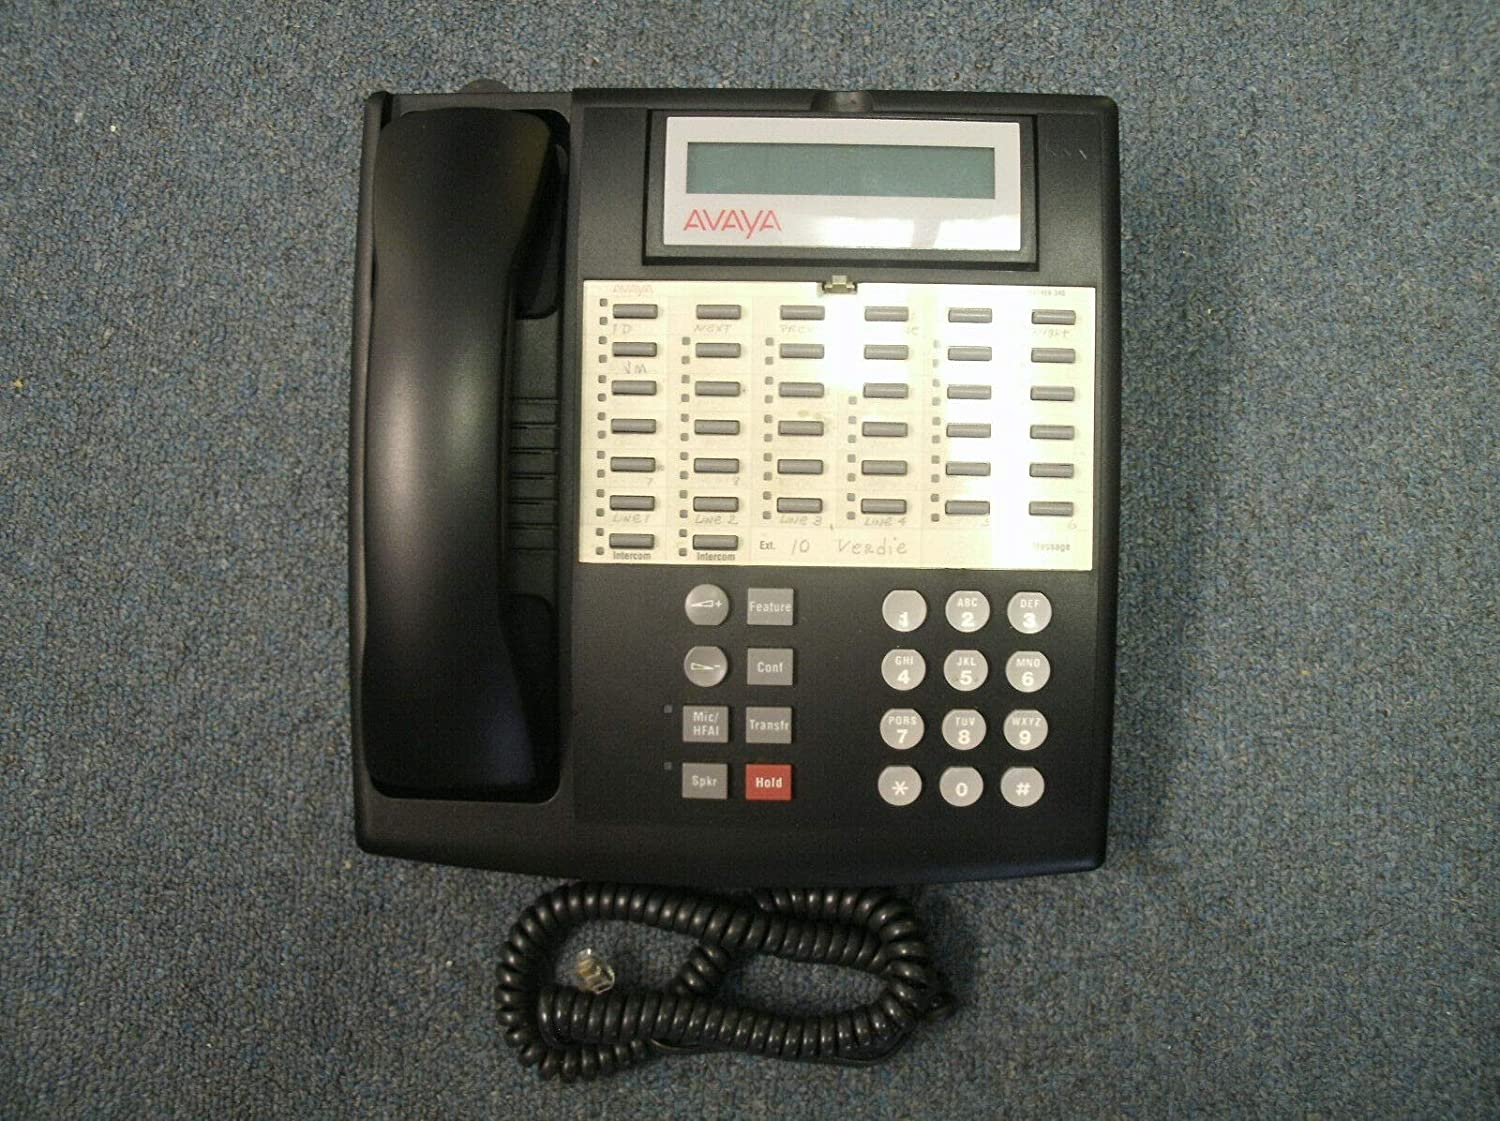 Inventory cleanup selling sale Lucent Avaya Partner 34D Euro 34 online shopping Button Display Phone Telephone